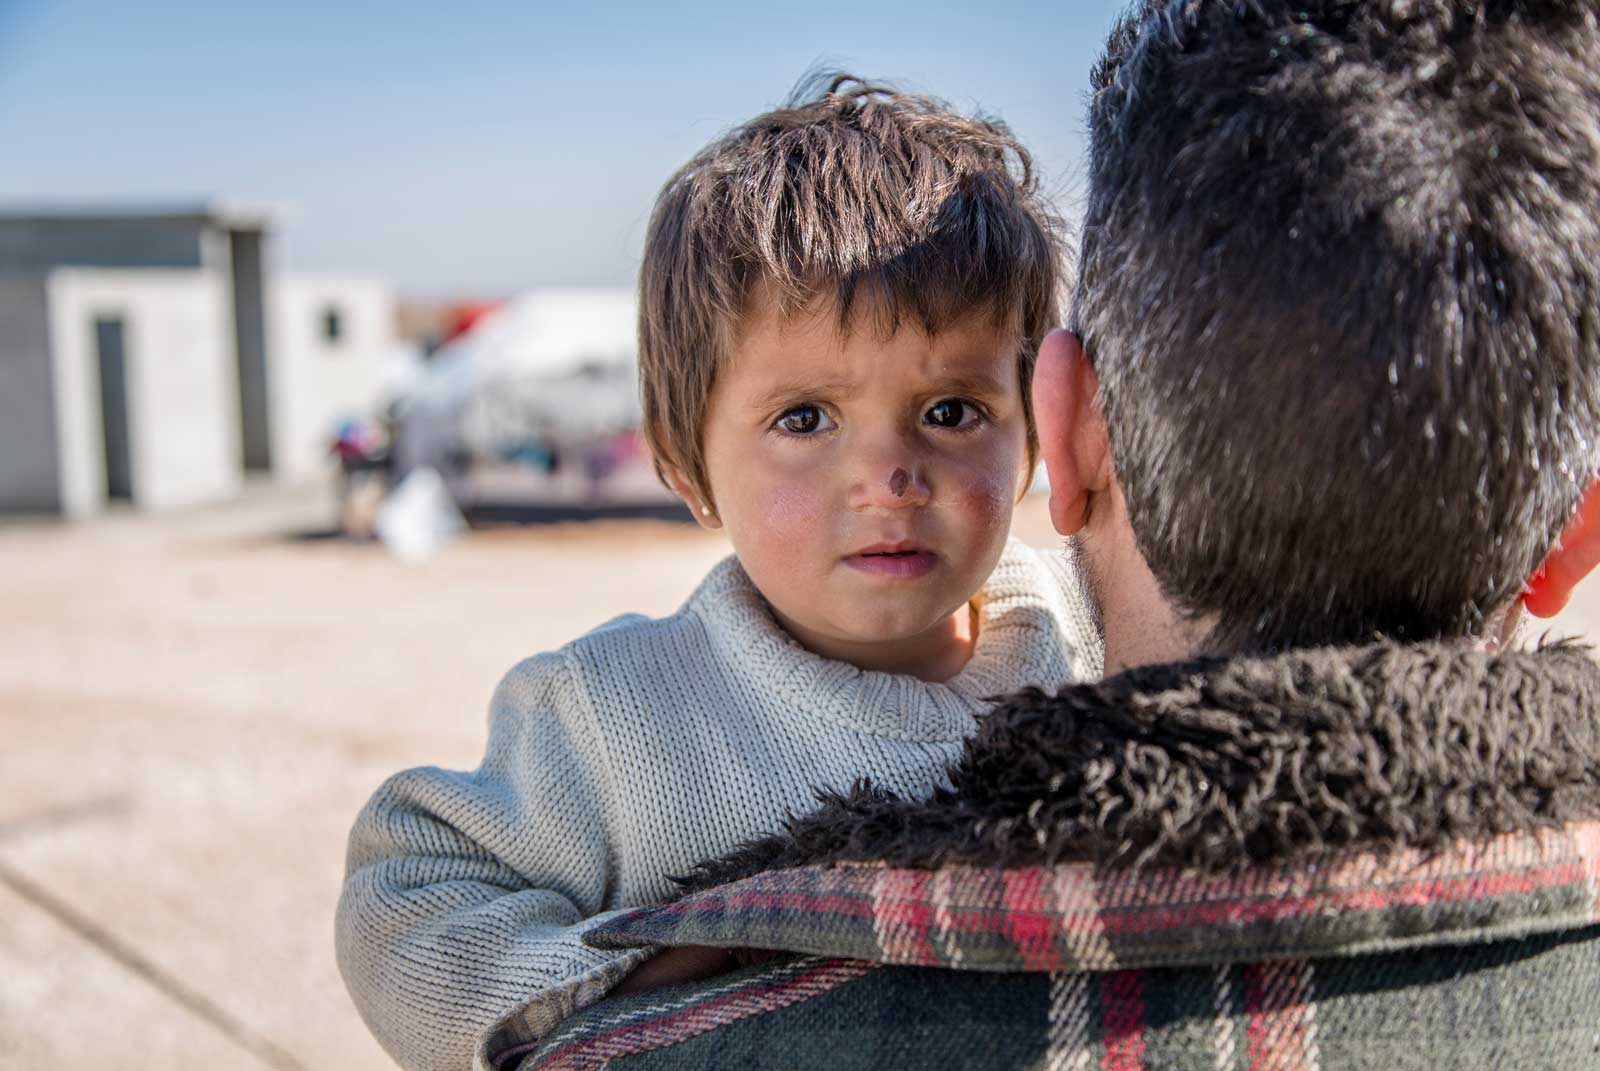 HISHAM*, A SCHOOL TEACHER FROM DEIR EZZOUR IN SYRIA, ARRIVED IN AL HOL CAMP WITH HIS WIFE AND FIVE CHILDREN IN FEBRUARY 2017. HISHAM SAYS HIS CHILDREN HAVE WITNESSED VIOLENCE ONE WOULDN'T EVEN SEE IN A FILM. HE WORRIES THAT THE LACK OF SCHOOLING WILL HAVE A DISASTROUS EFFECT ON YOUNGER GENERATIONS. IMAGE BY SAVE THE CHILDREN.